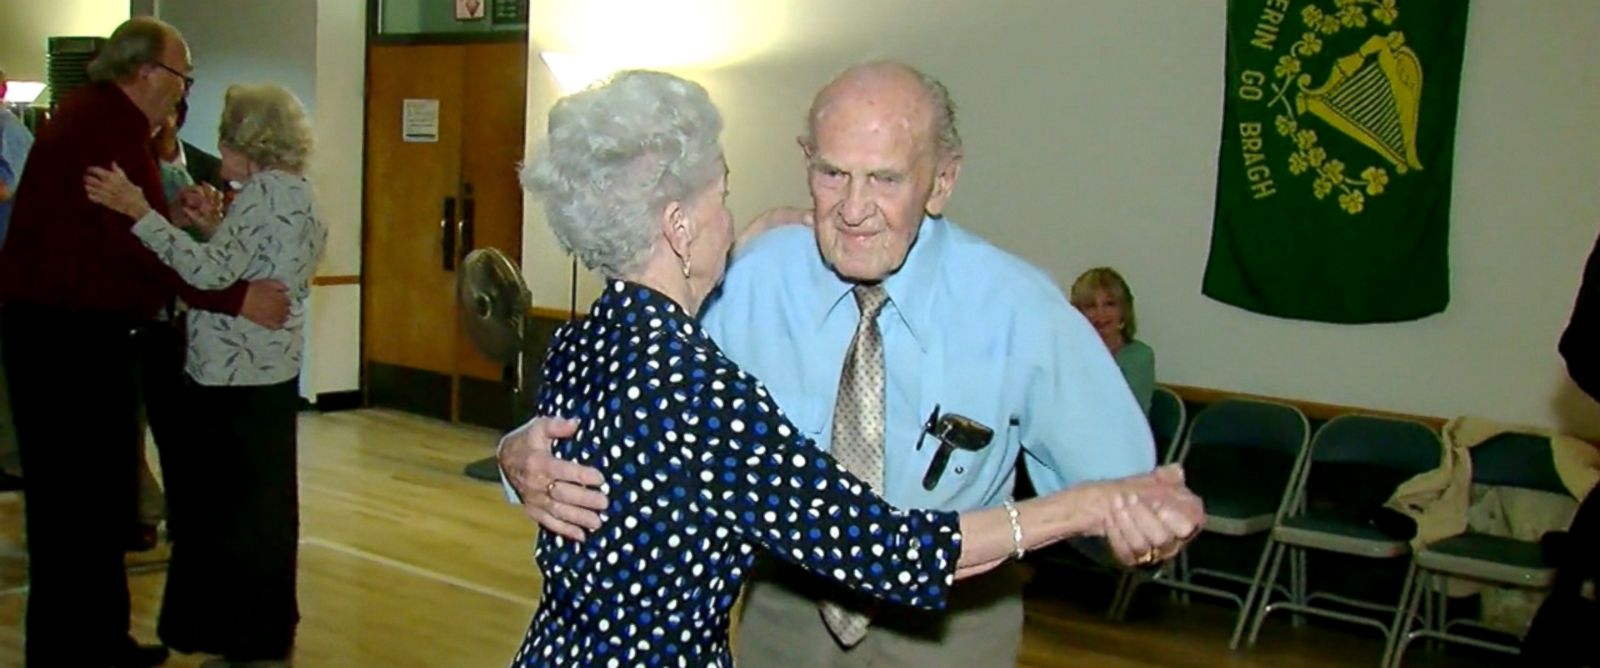 PHOTO: Karl Tinggaard, 103, is known for dancing every Thursday night at a senior center in Murray, Utah.